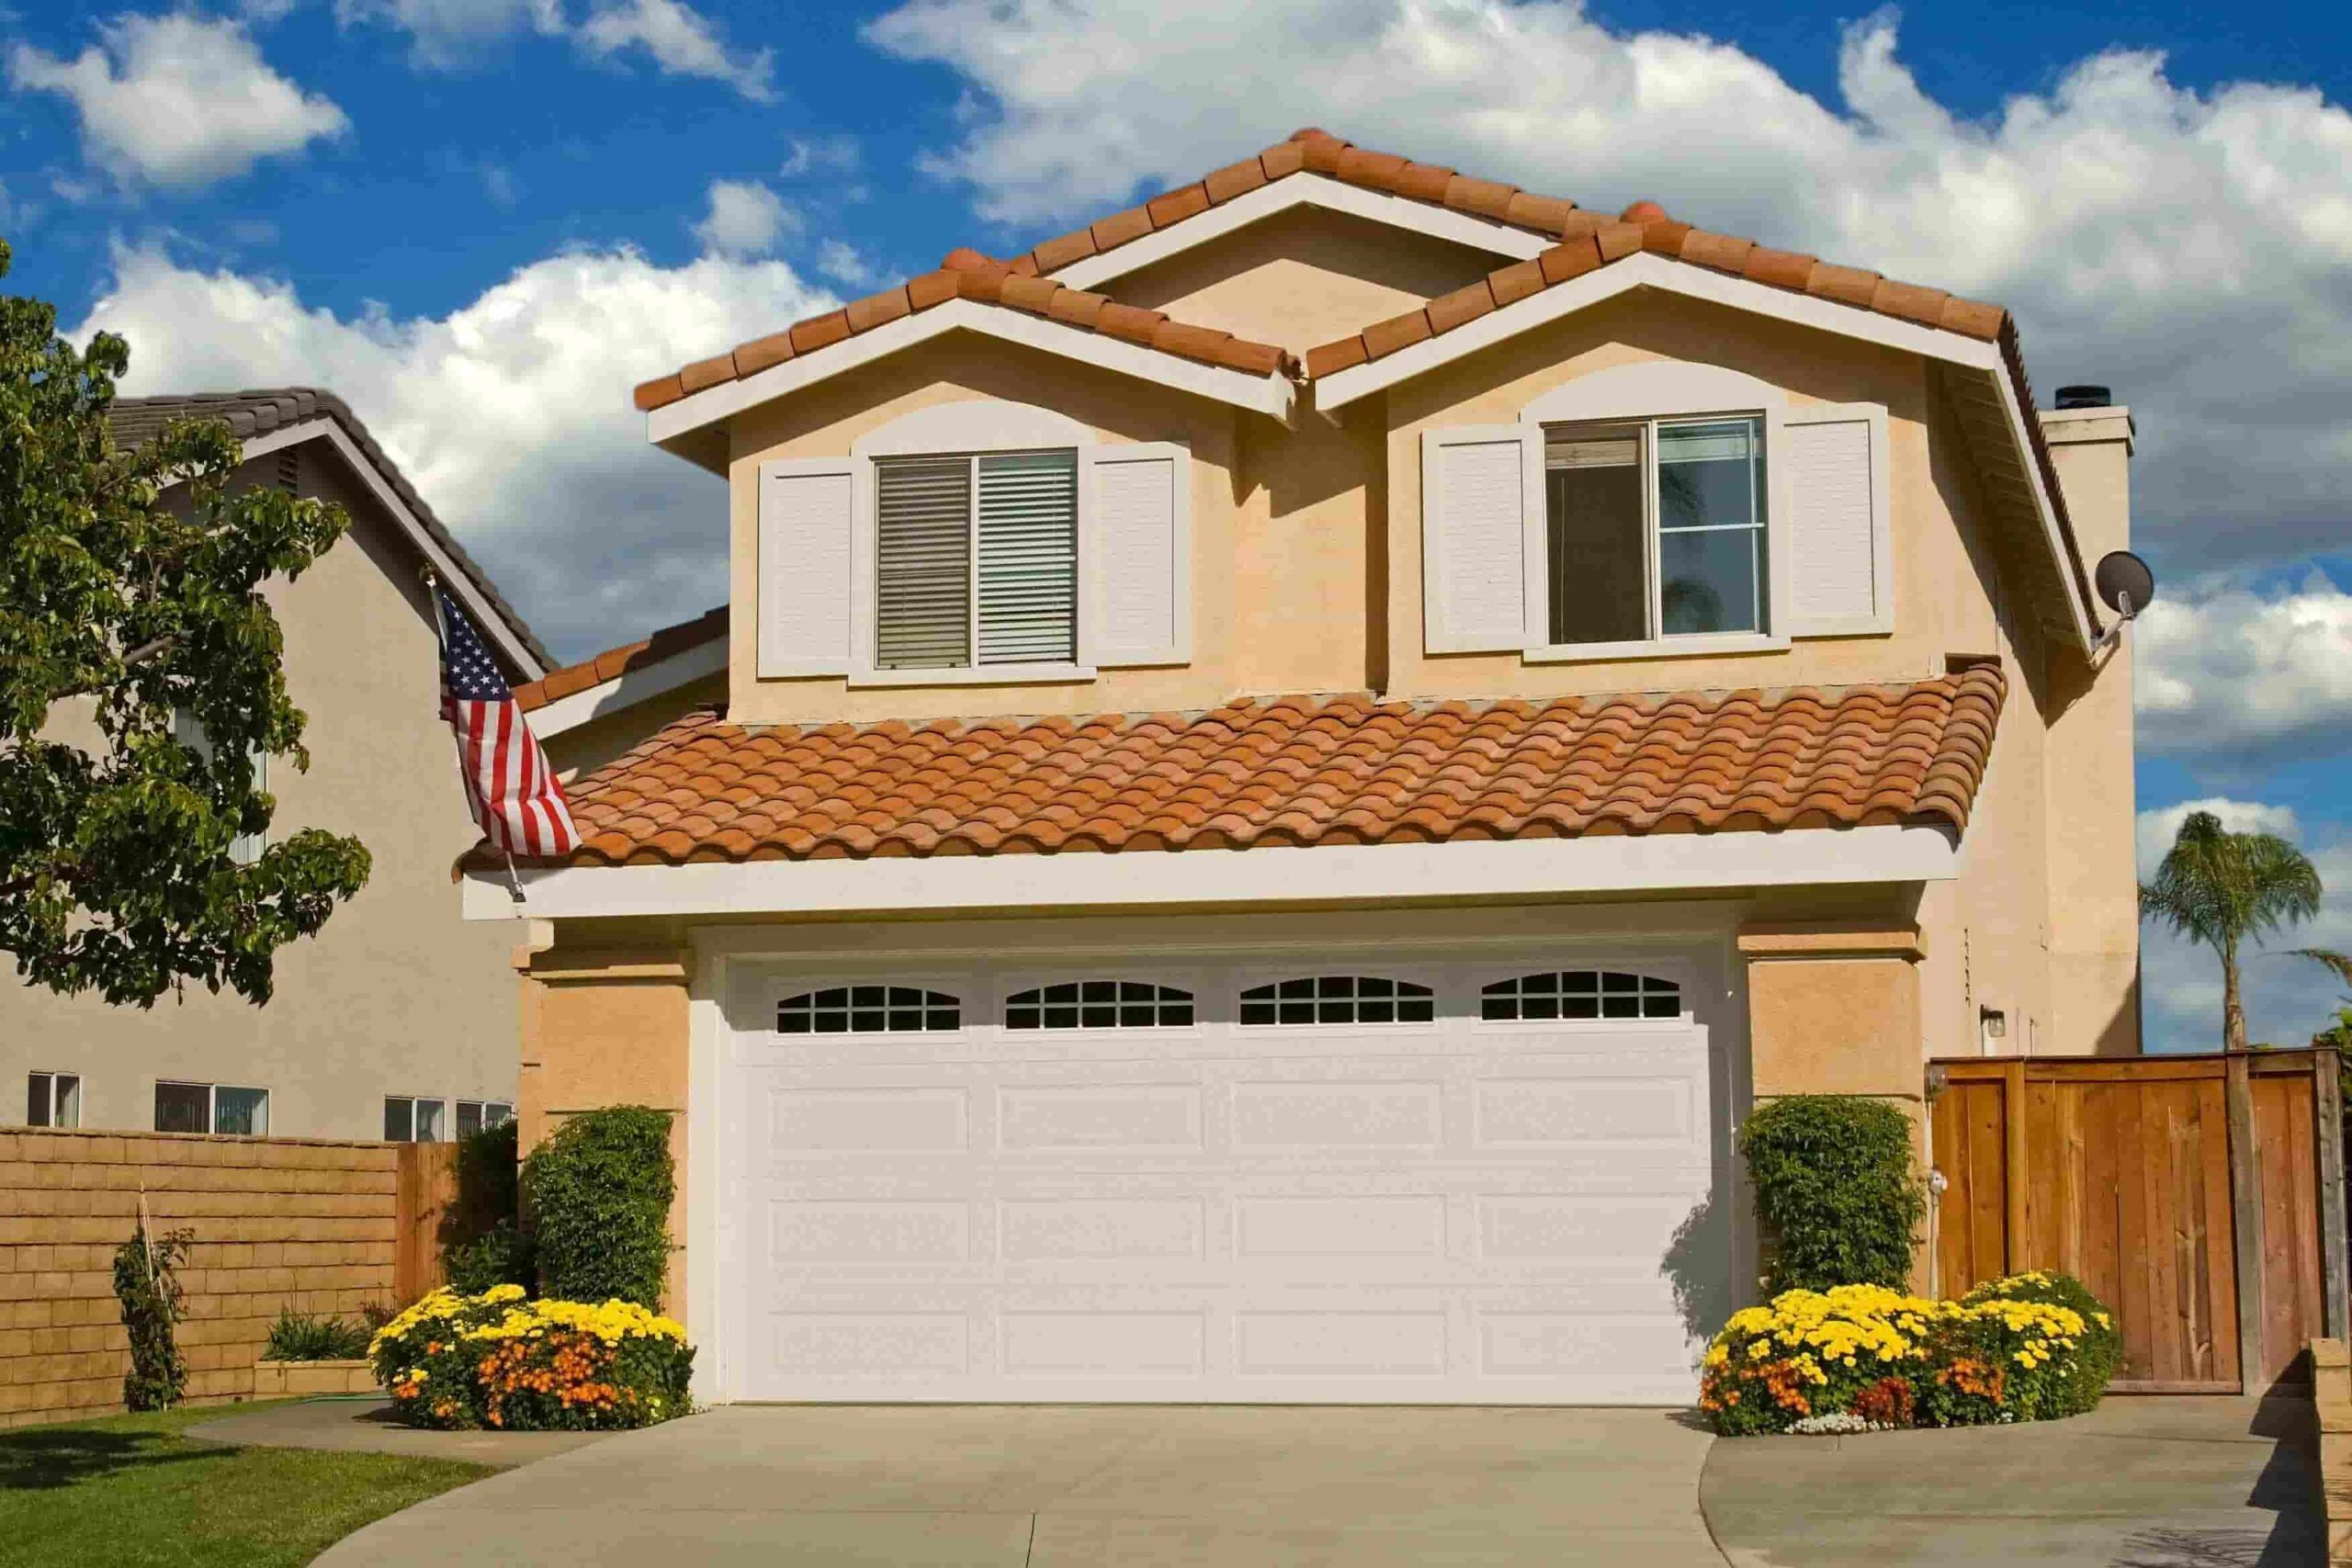 Hire A Professional To Fix Your Garage